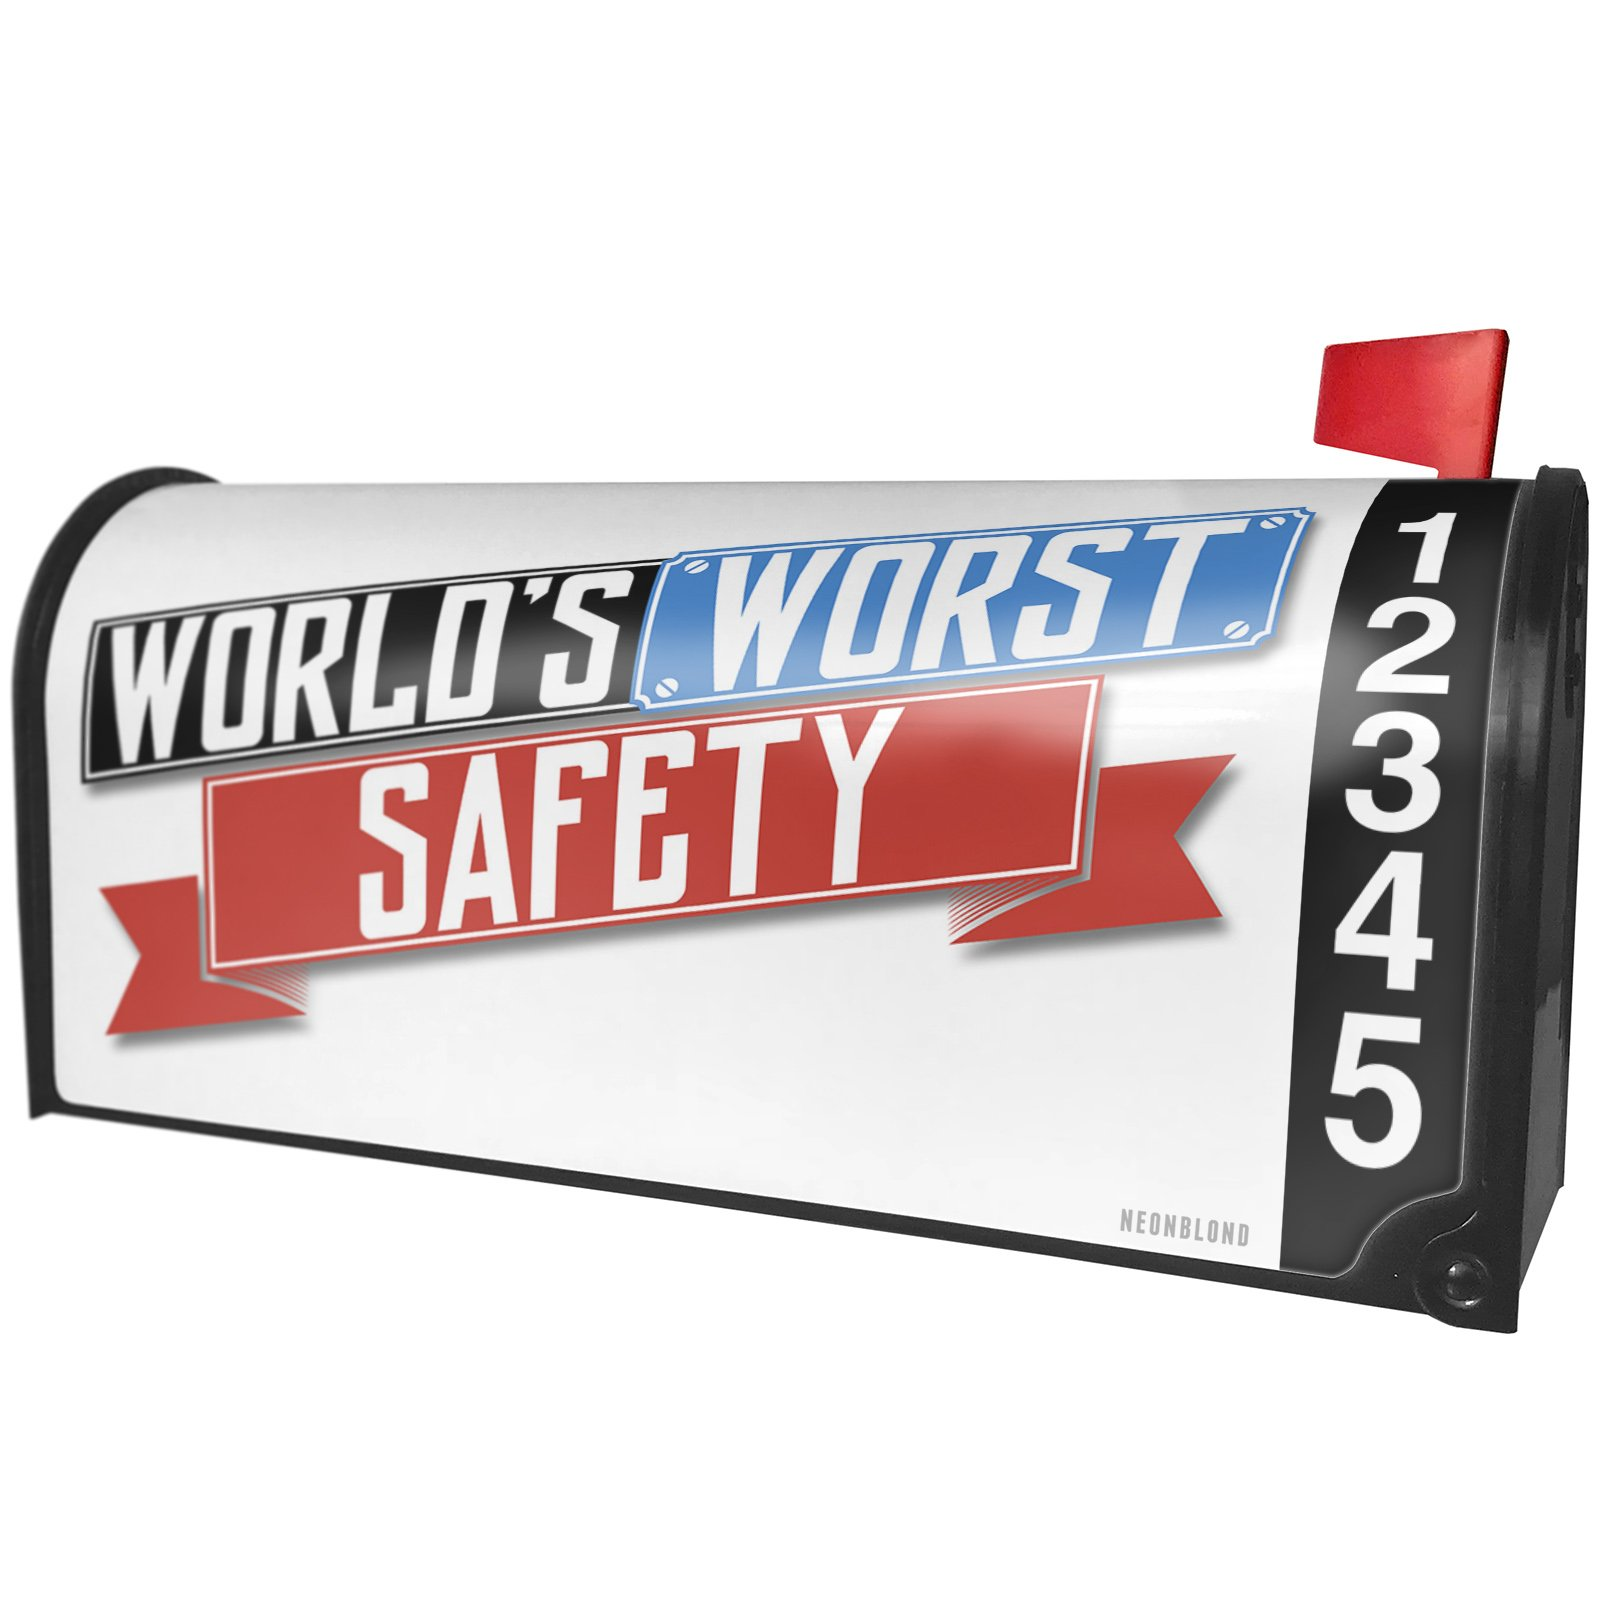 NEONBLOND Funny Worlds Worst Safety Magnetic Mailbox Cover Custom Numbers